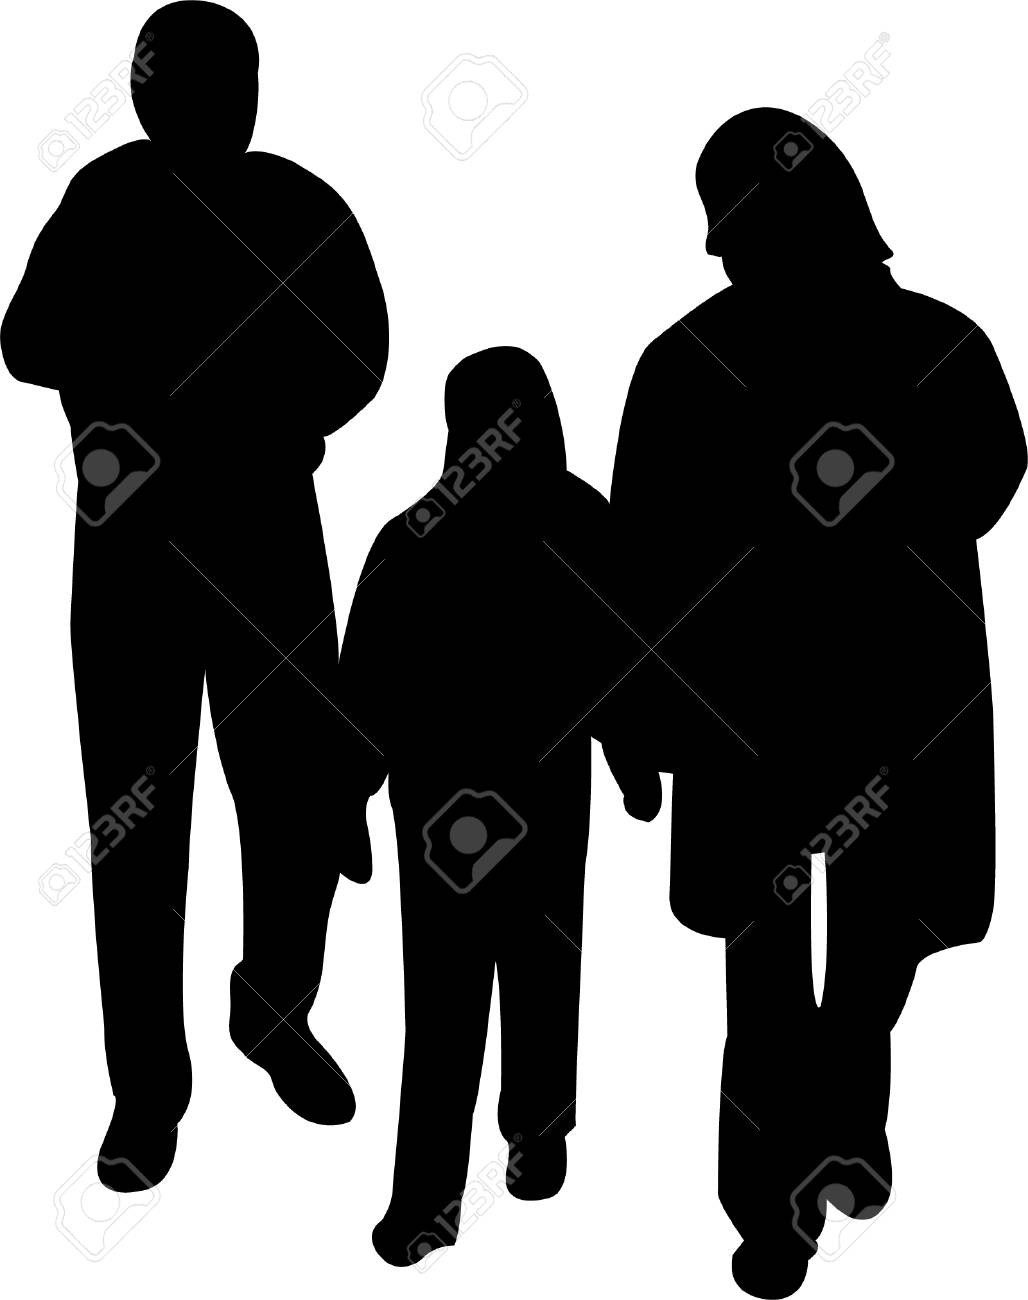 illustration of family silhouette vector royalty free cliparts rh 123rf com family silhouettes vector free walking family silhouette vector